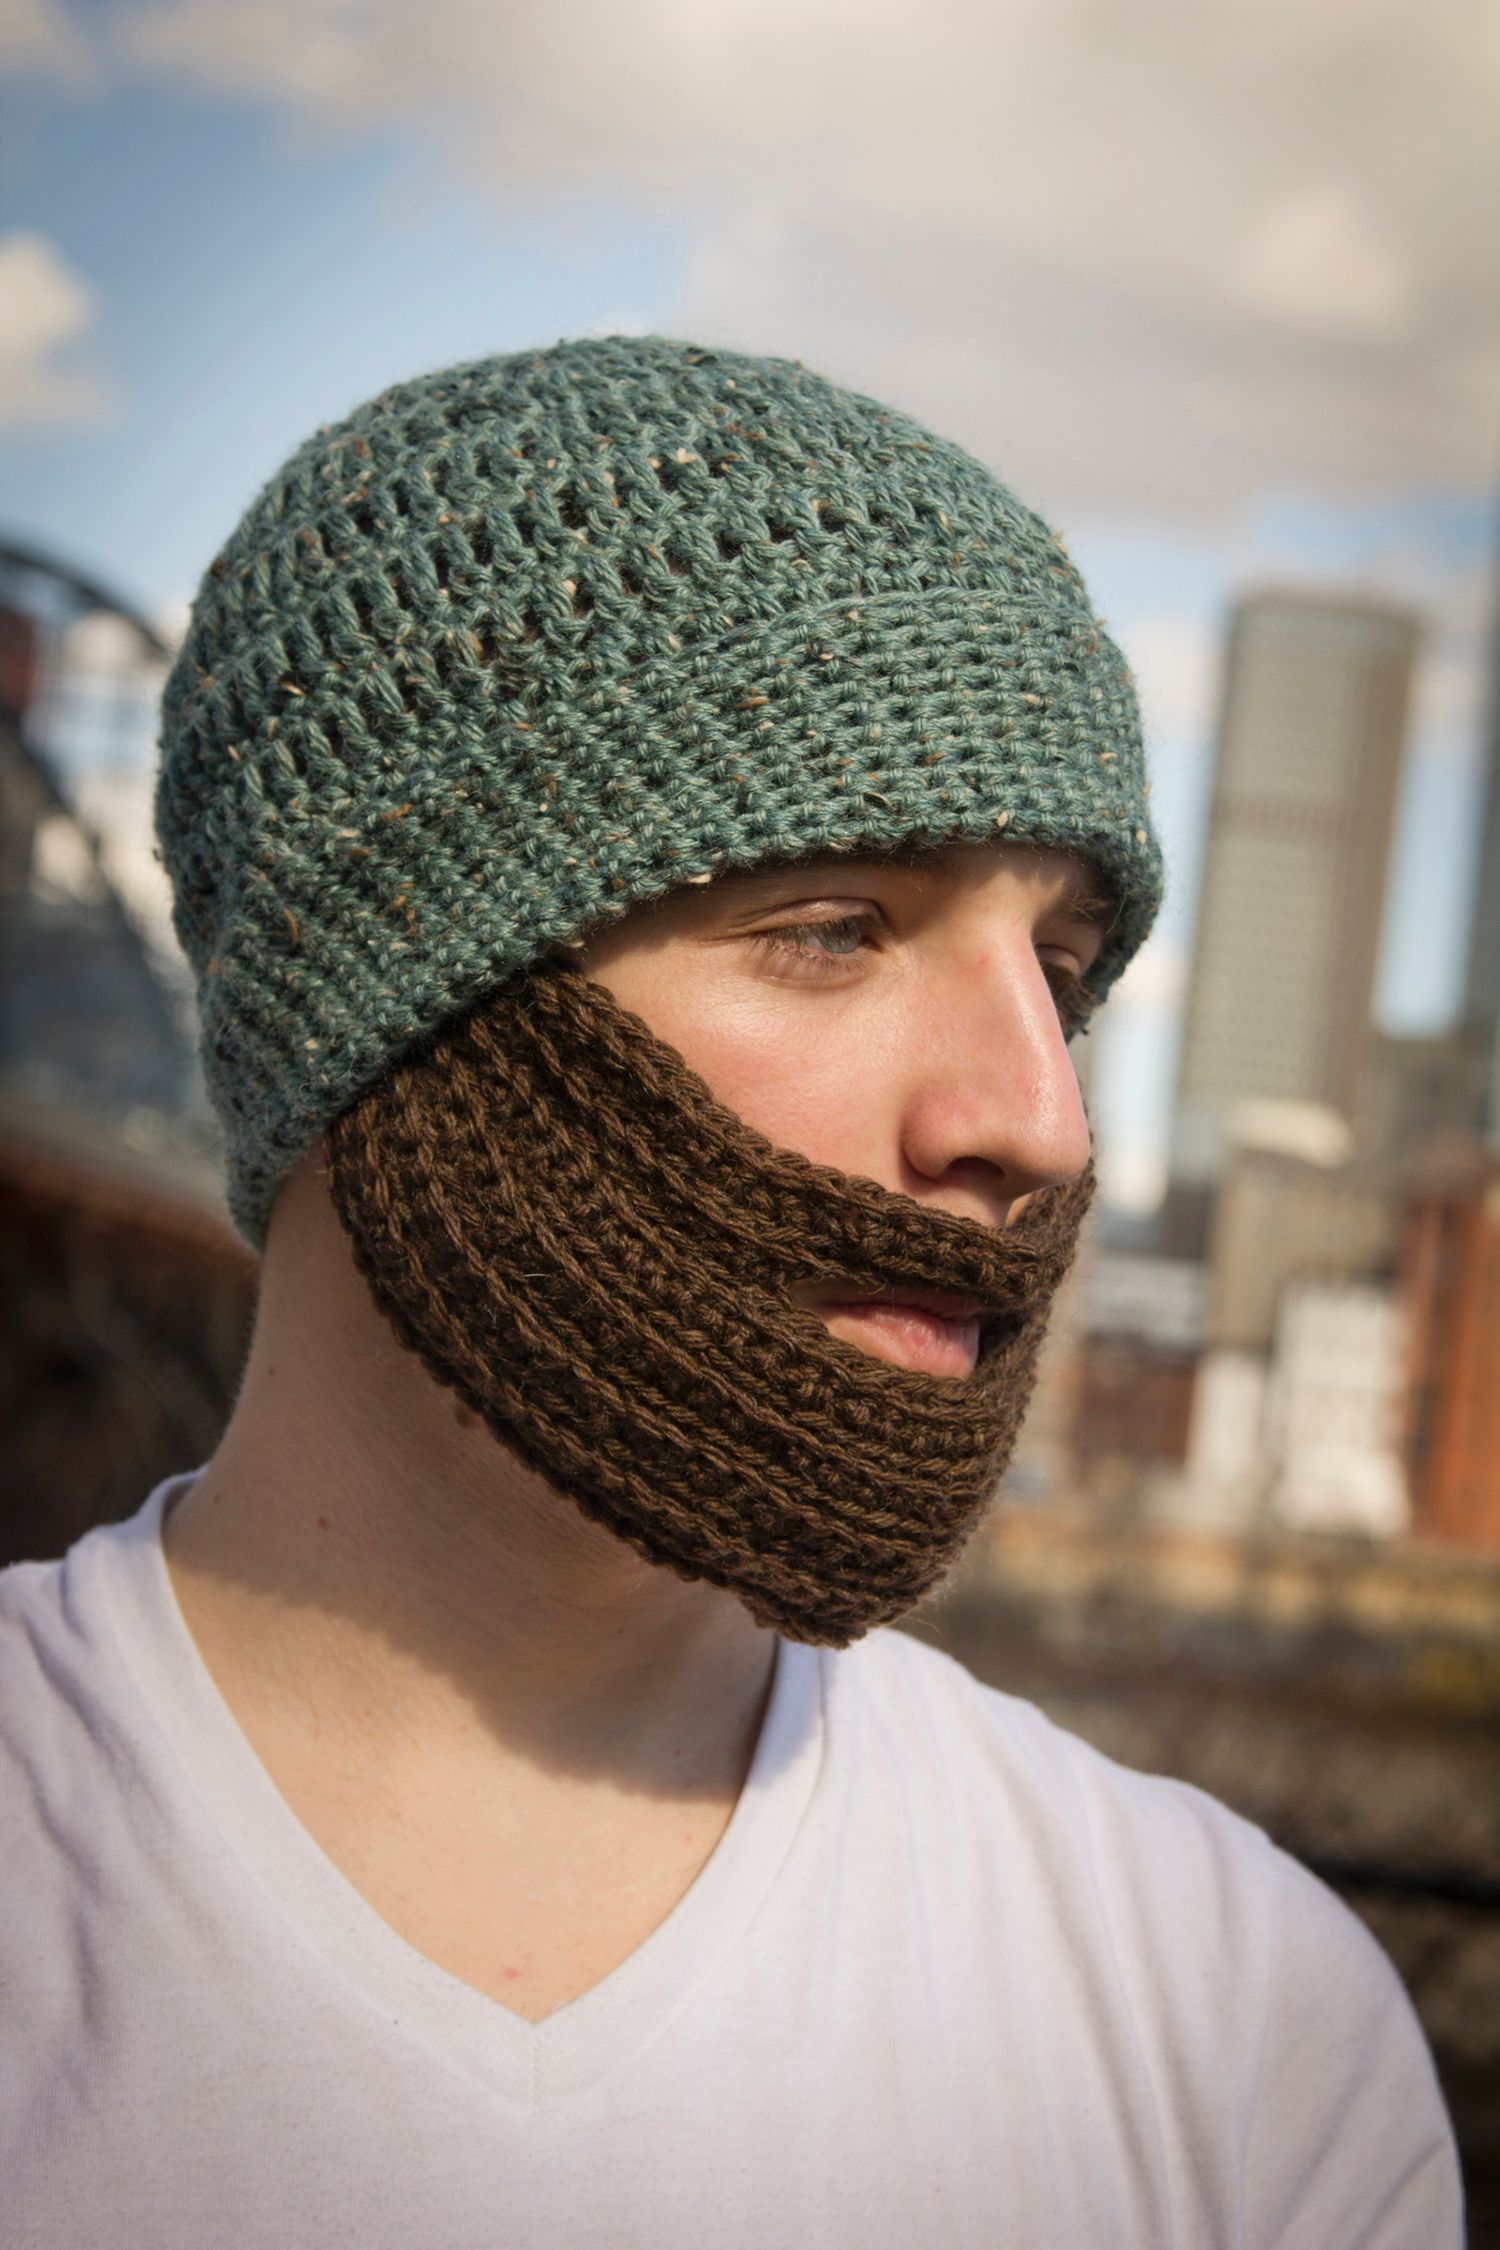 Knitting Patterns By Needle Size : Crochet Bearded Hat - Knitting Patterns and Crochet Patterns from KnitPicks.com